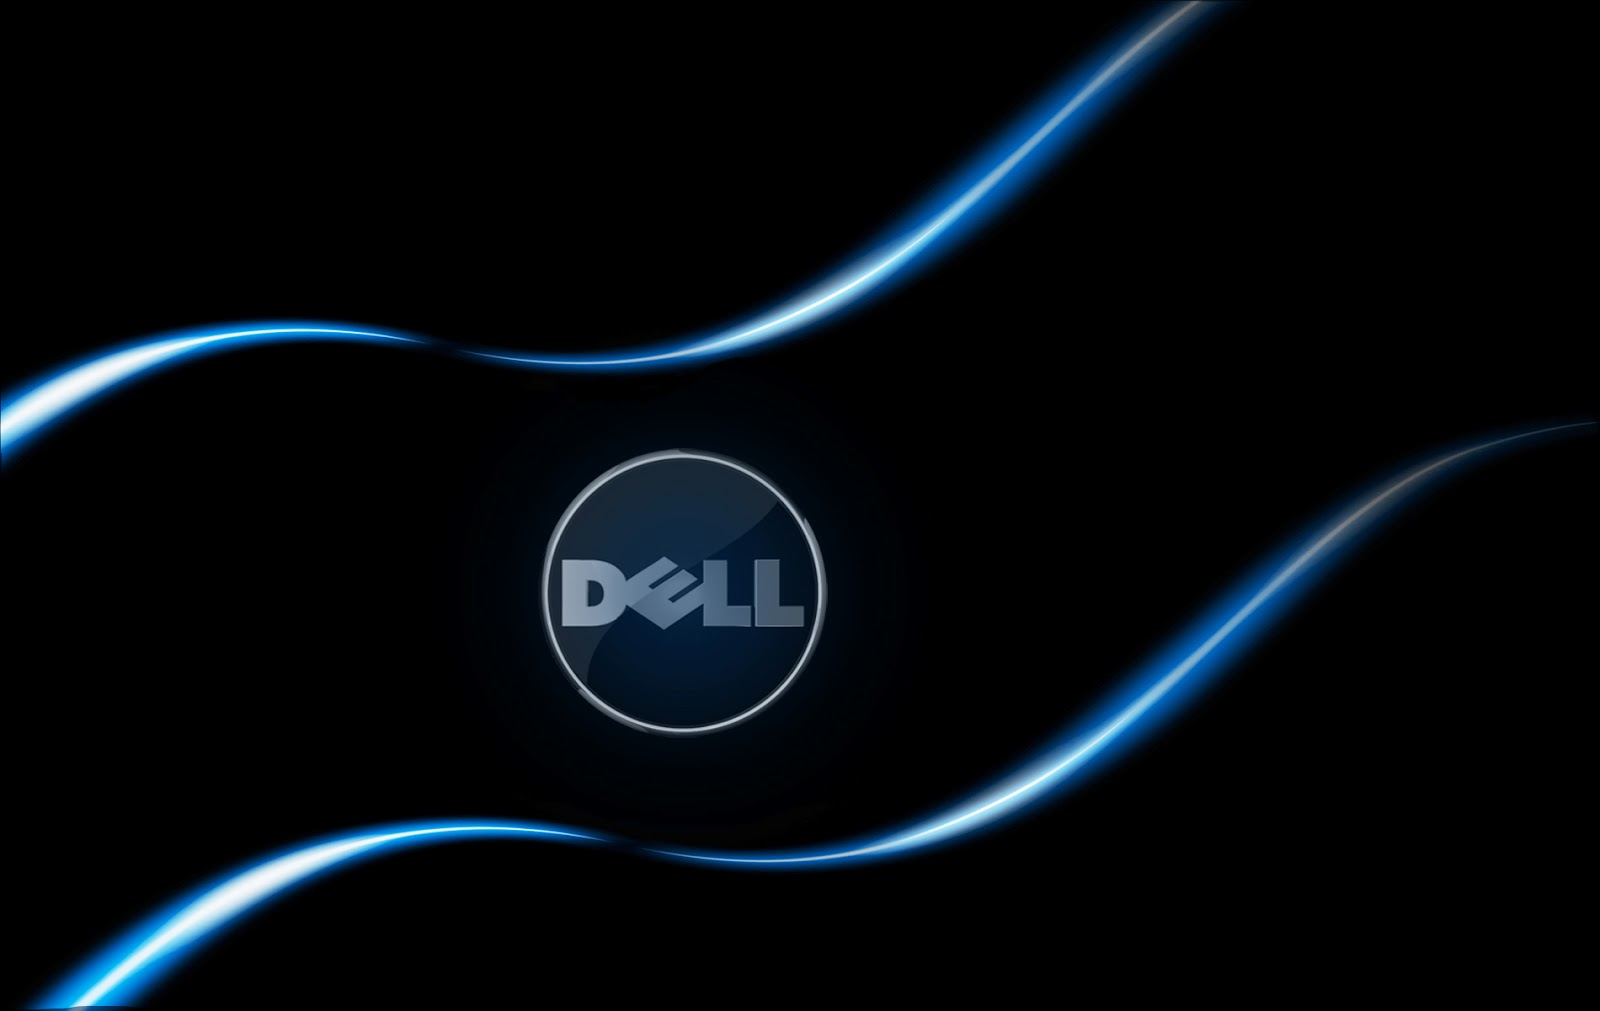 dell dimension wallpaper - photo #1